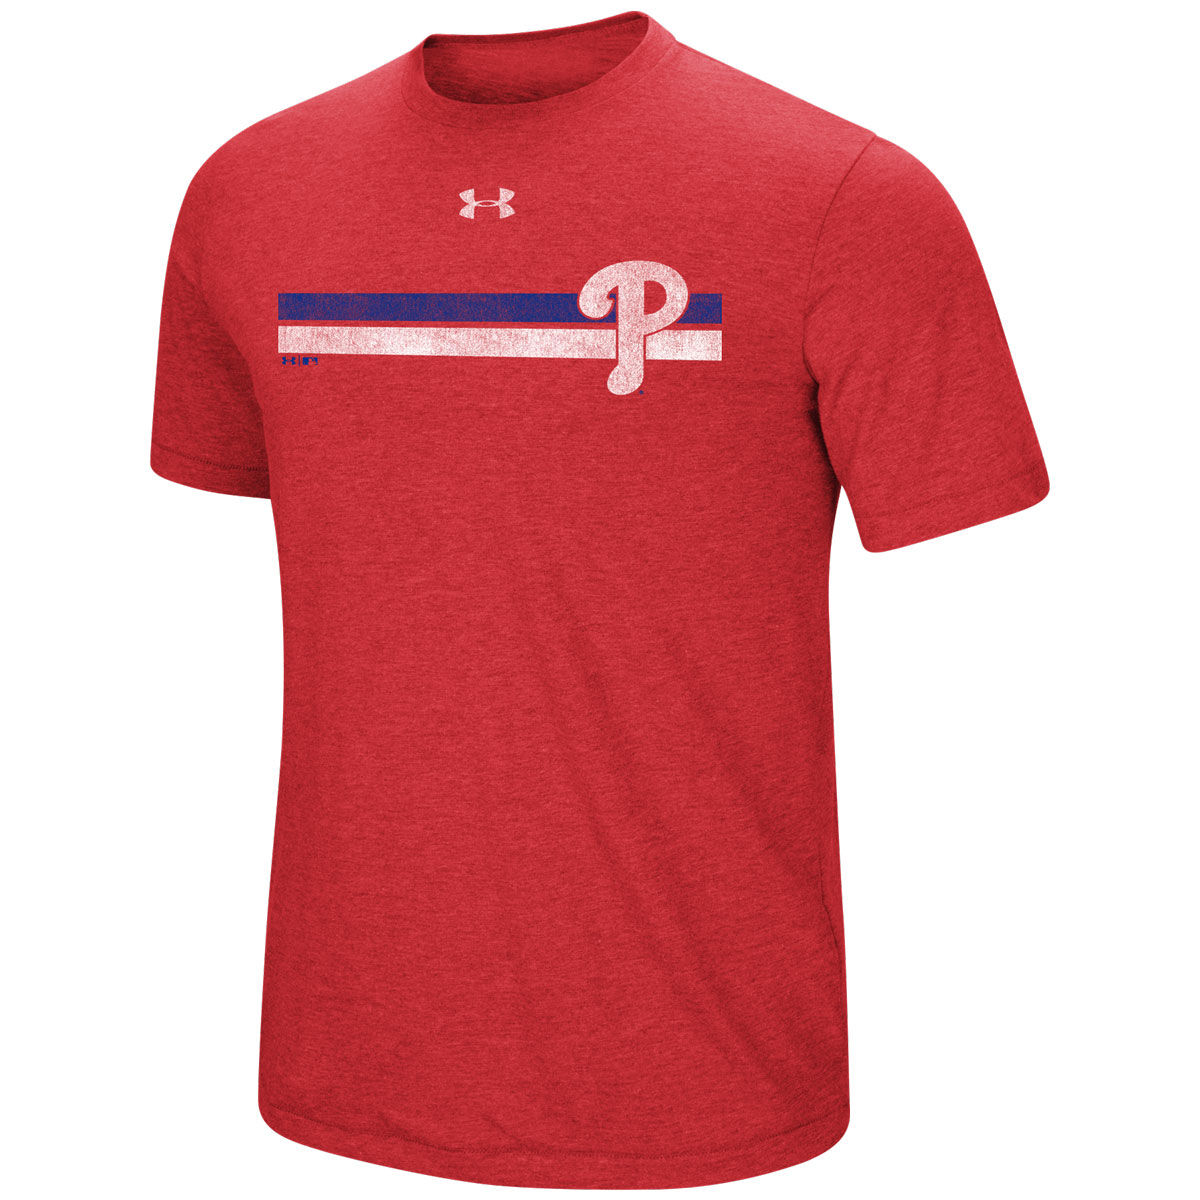 Philadelphia Phillies Adult T-Shirt